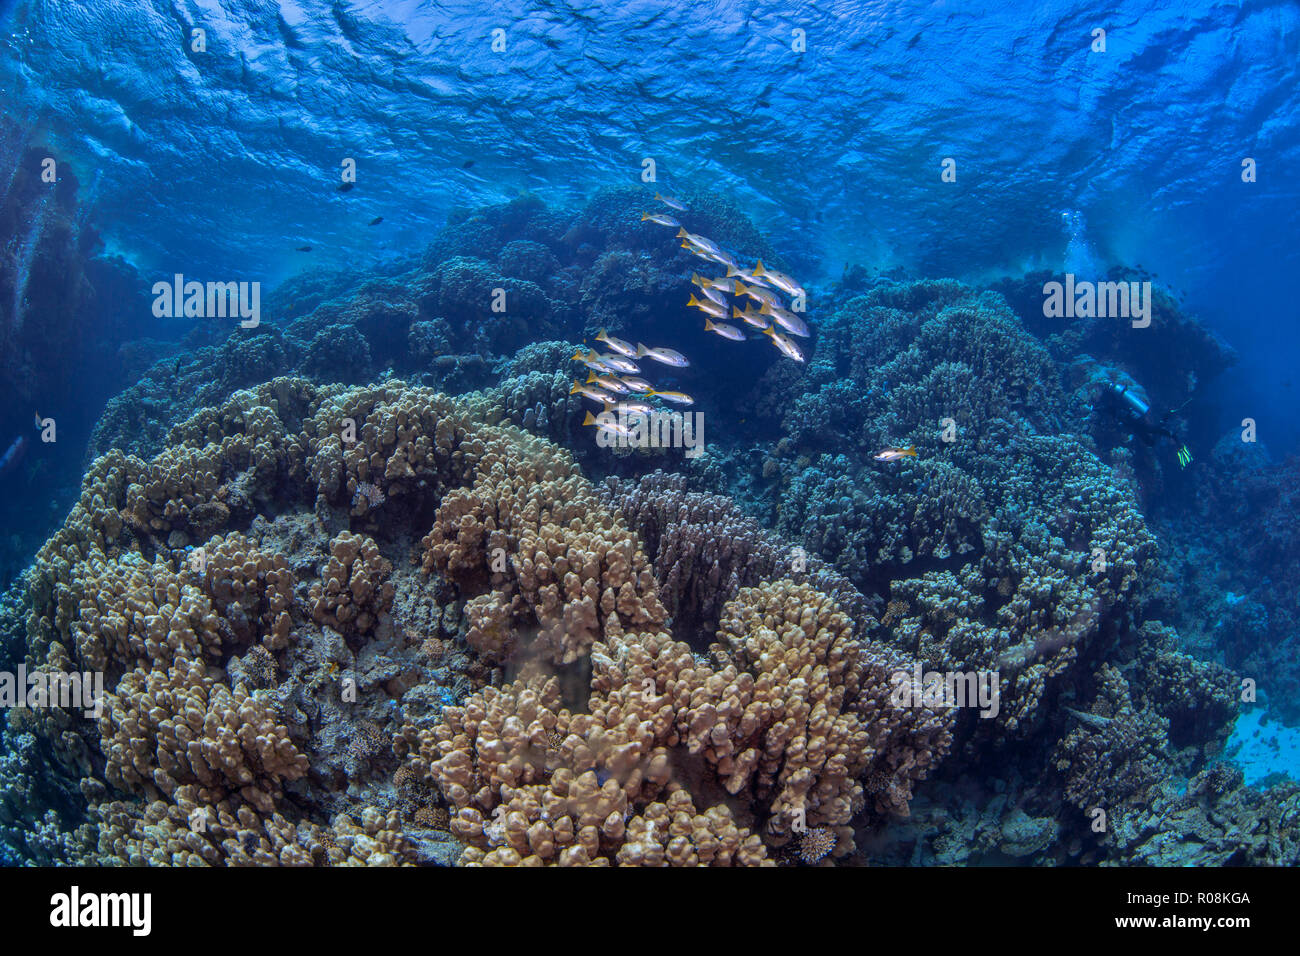 Scuba divers explore mountainous coral reef formations in the Red Sea. Stock Photo